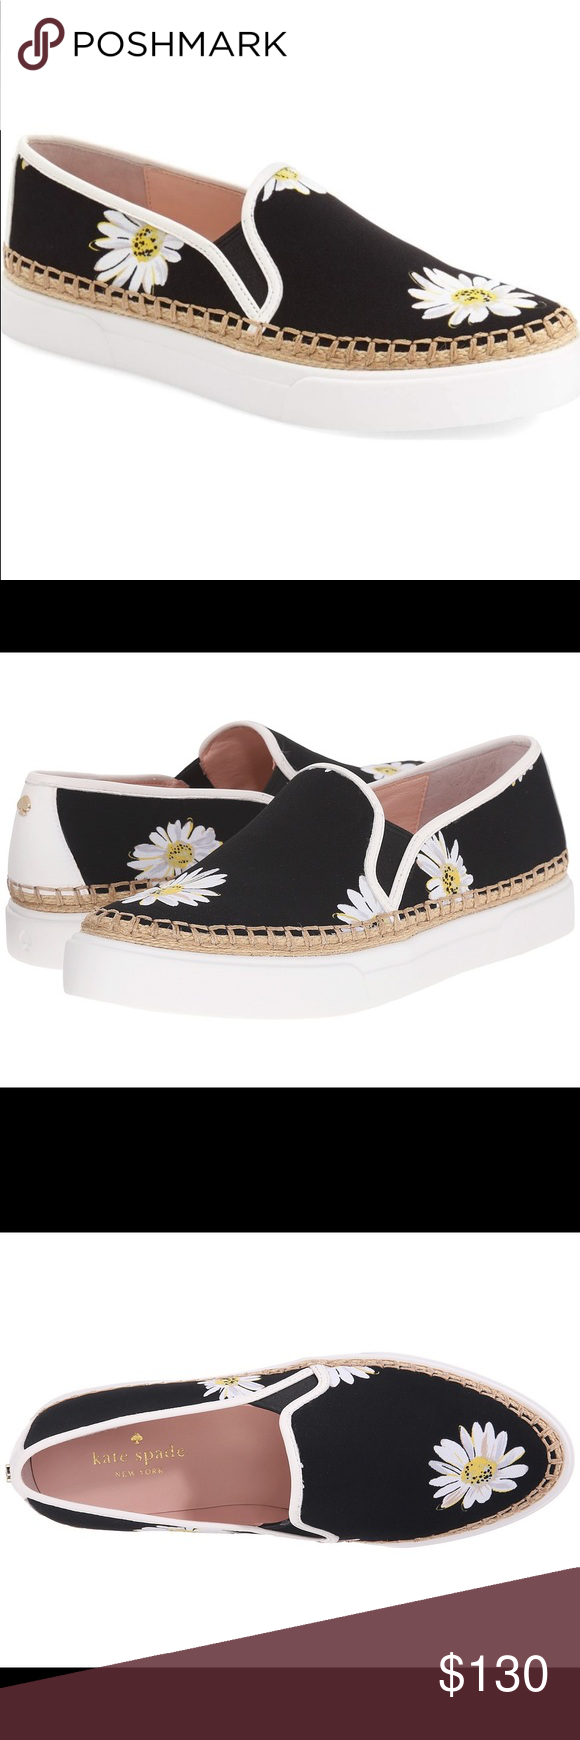 Kate Spade Cory blk White daisy slip on shoes 100% authentic! New in box, made in China. Size: 5.5M, color: blk/white, material: leather and textile upper, retail: $200 kate spade Shoes Flats & Loafers